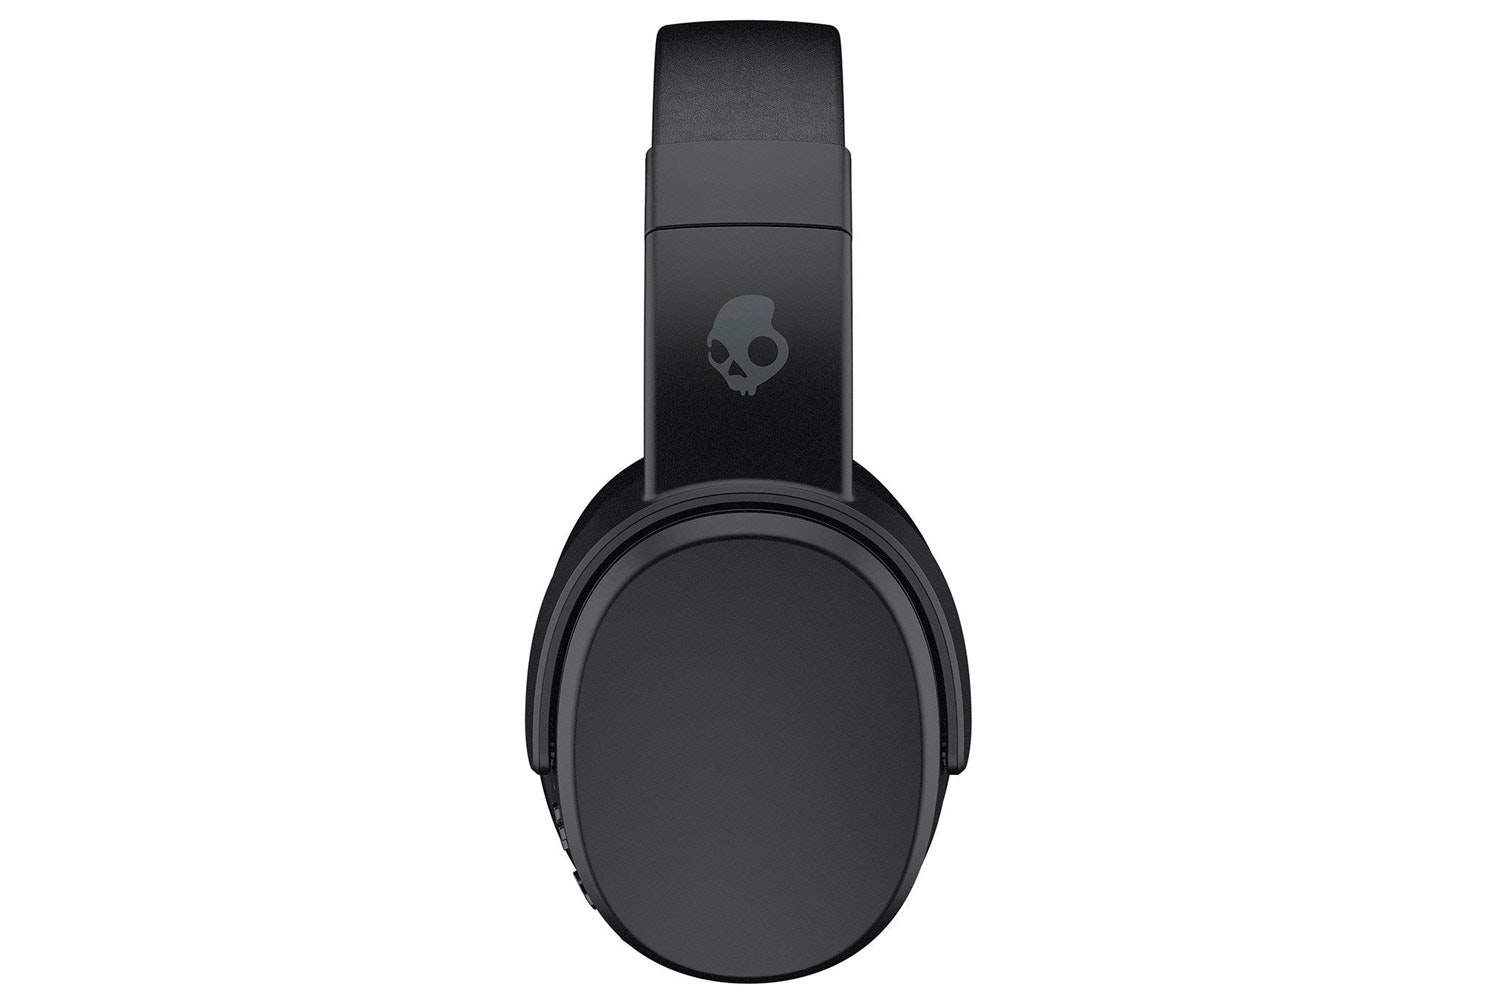 Skullcandy Crusher Wireless Headphone Black | S6crw-K591